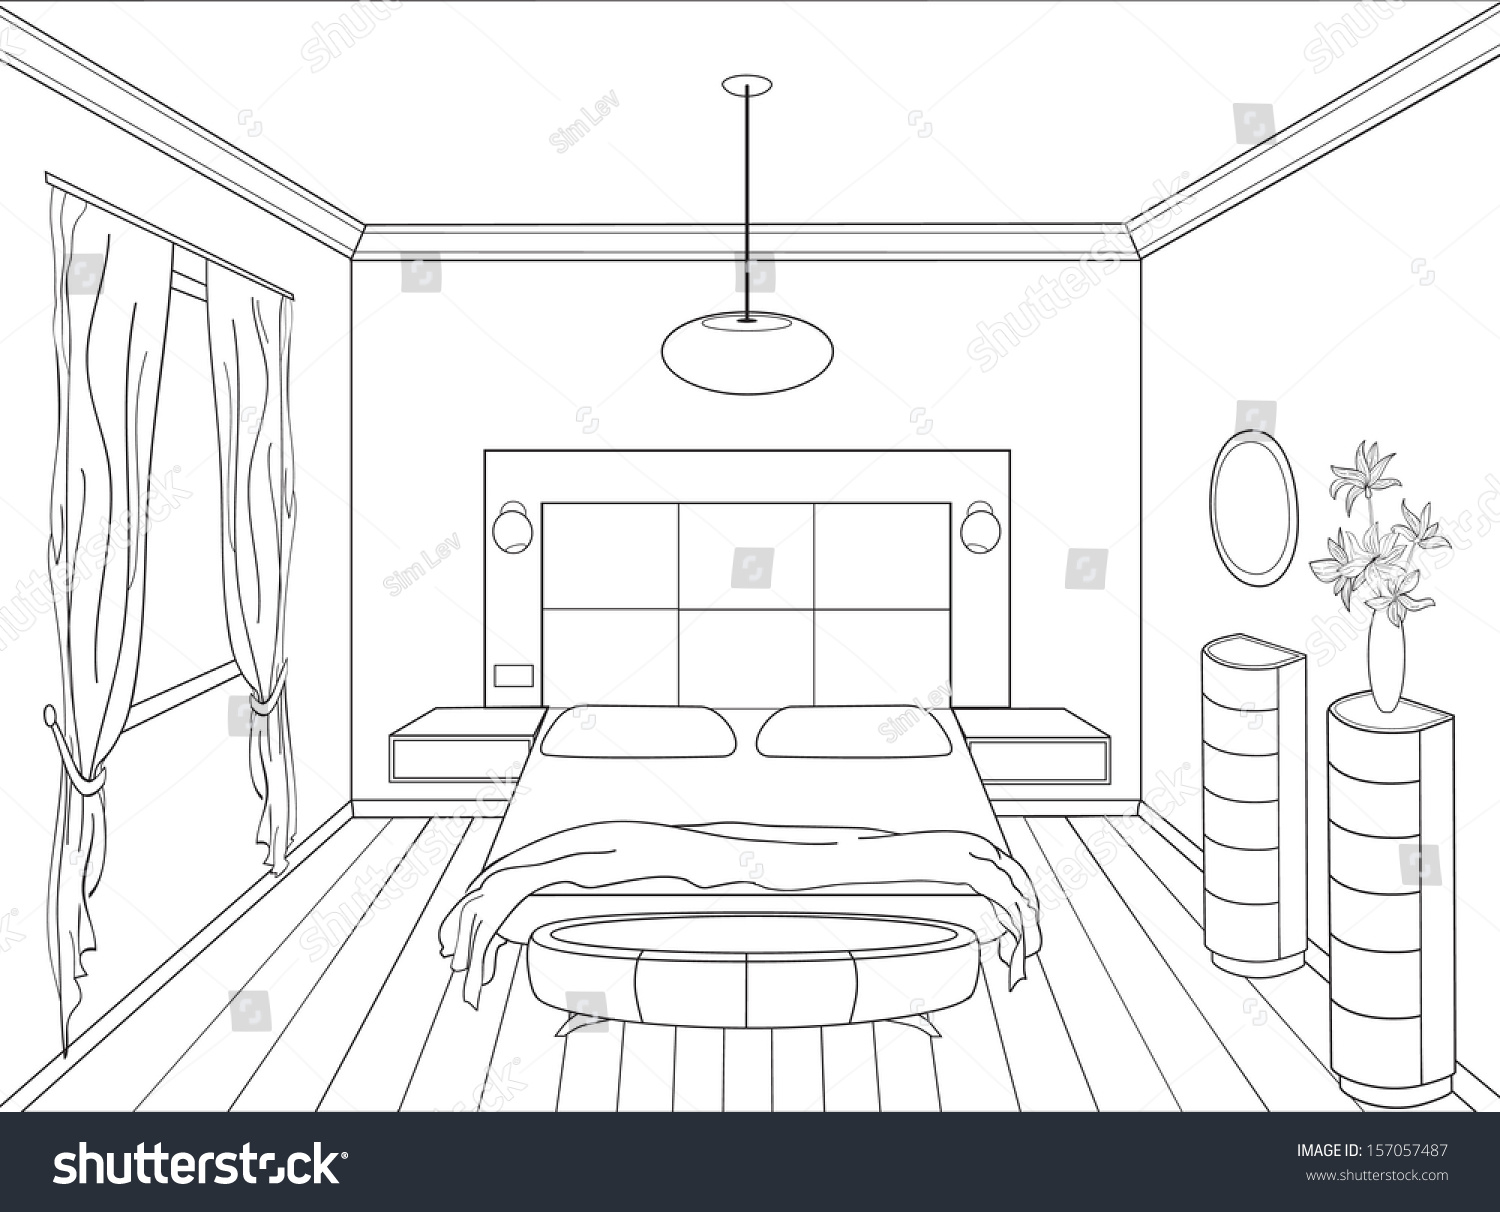 how to draw a bed in two point perspective